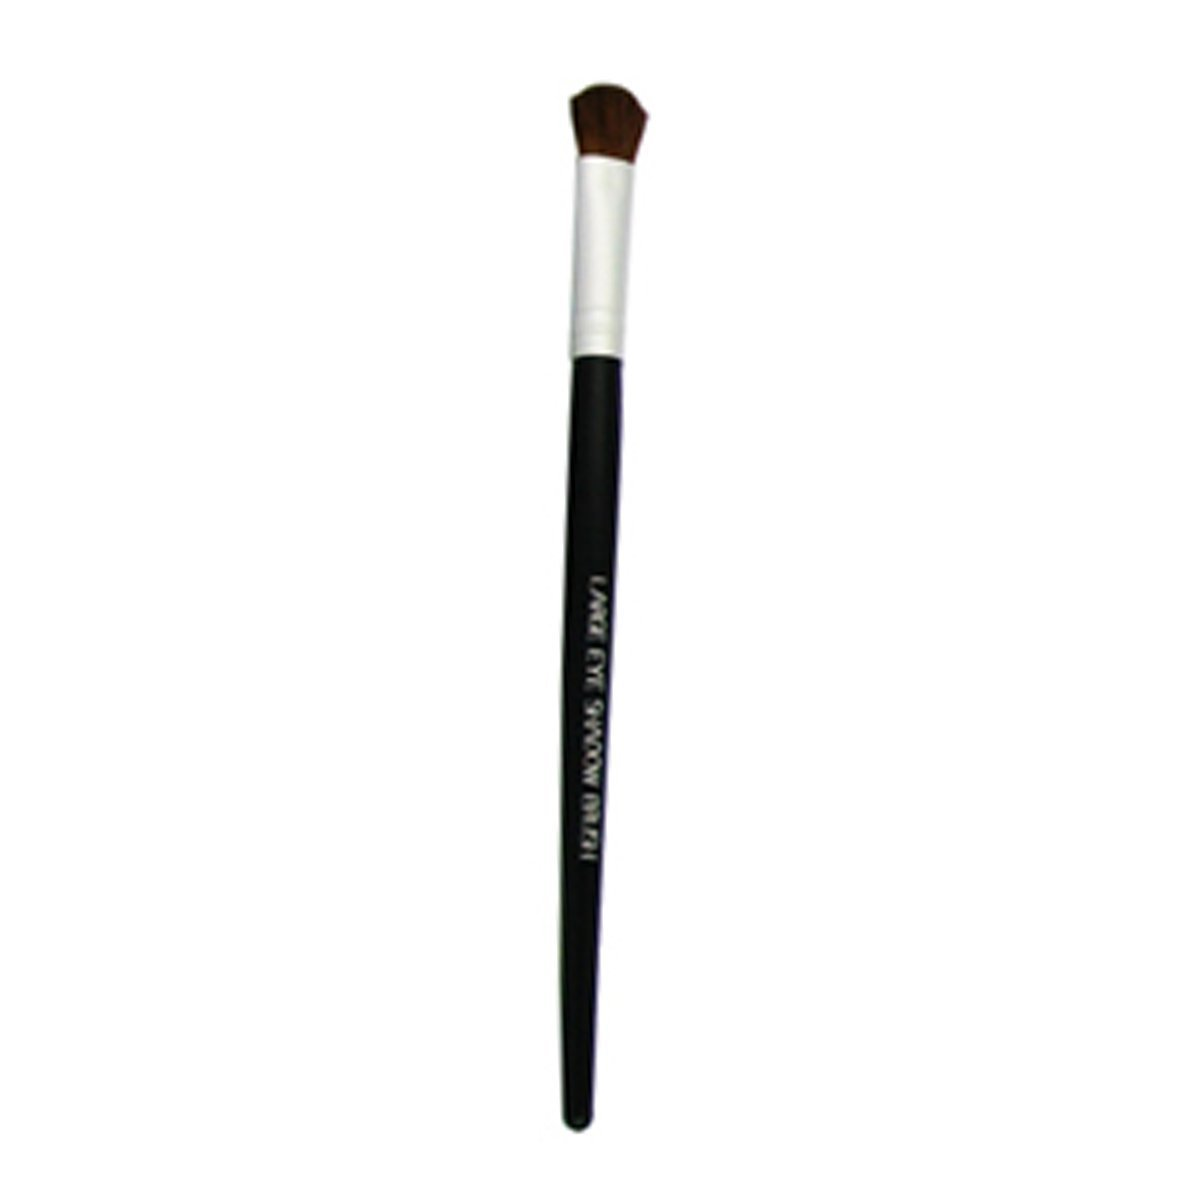 Royal Contour Eyeshadow Make Up Brush QBRU053